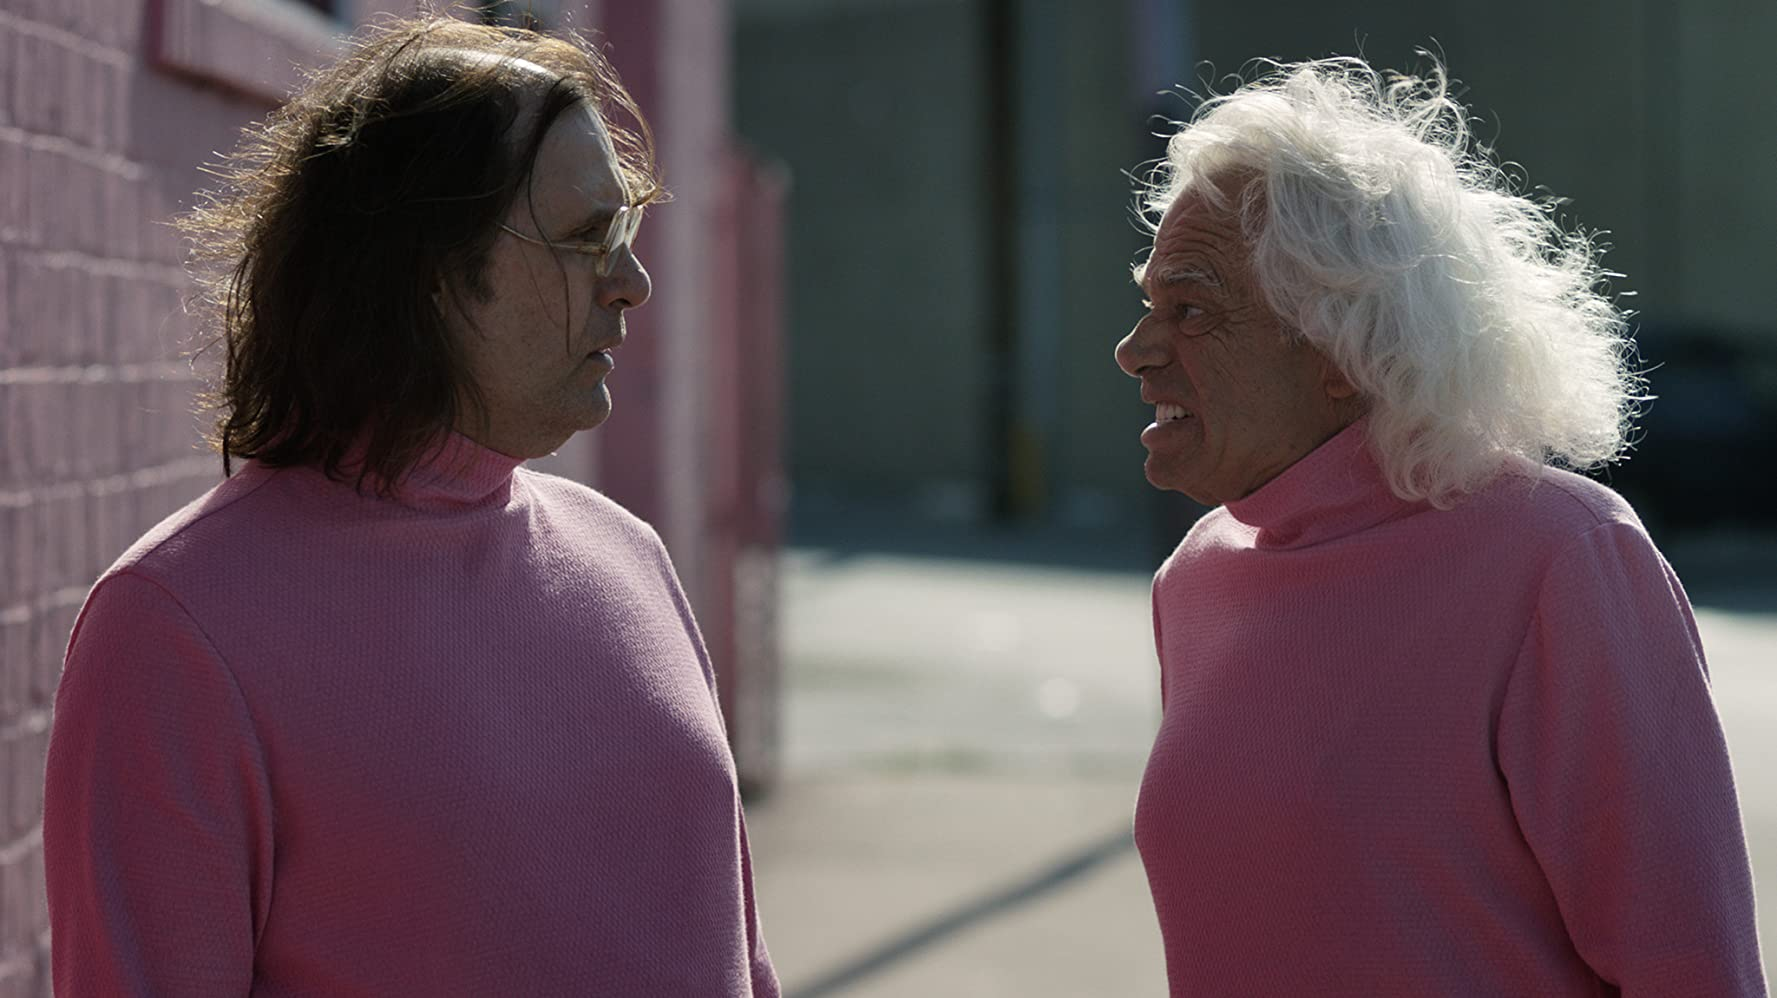 Ver The Greasy Strangler (2016) online GRATIS